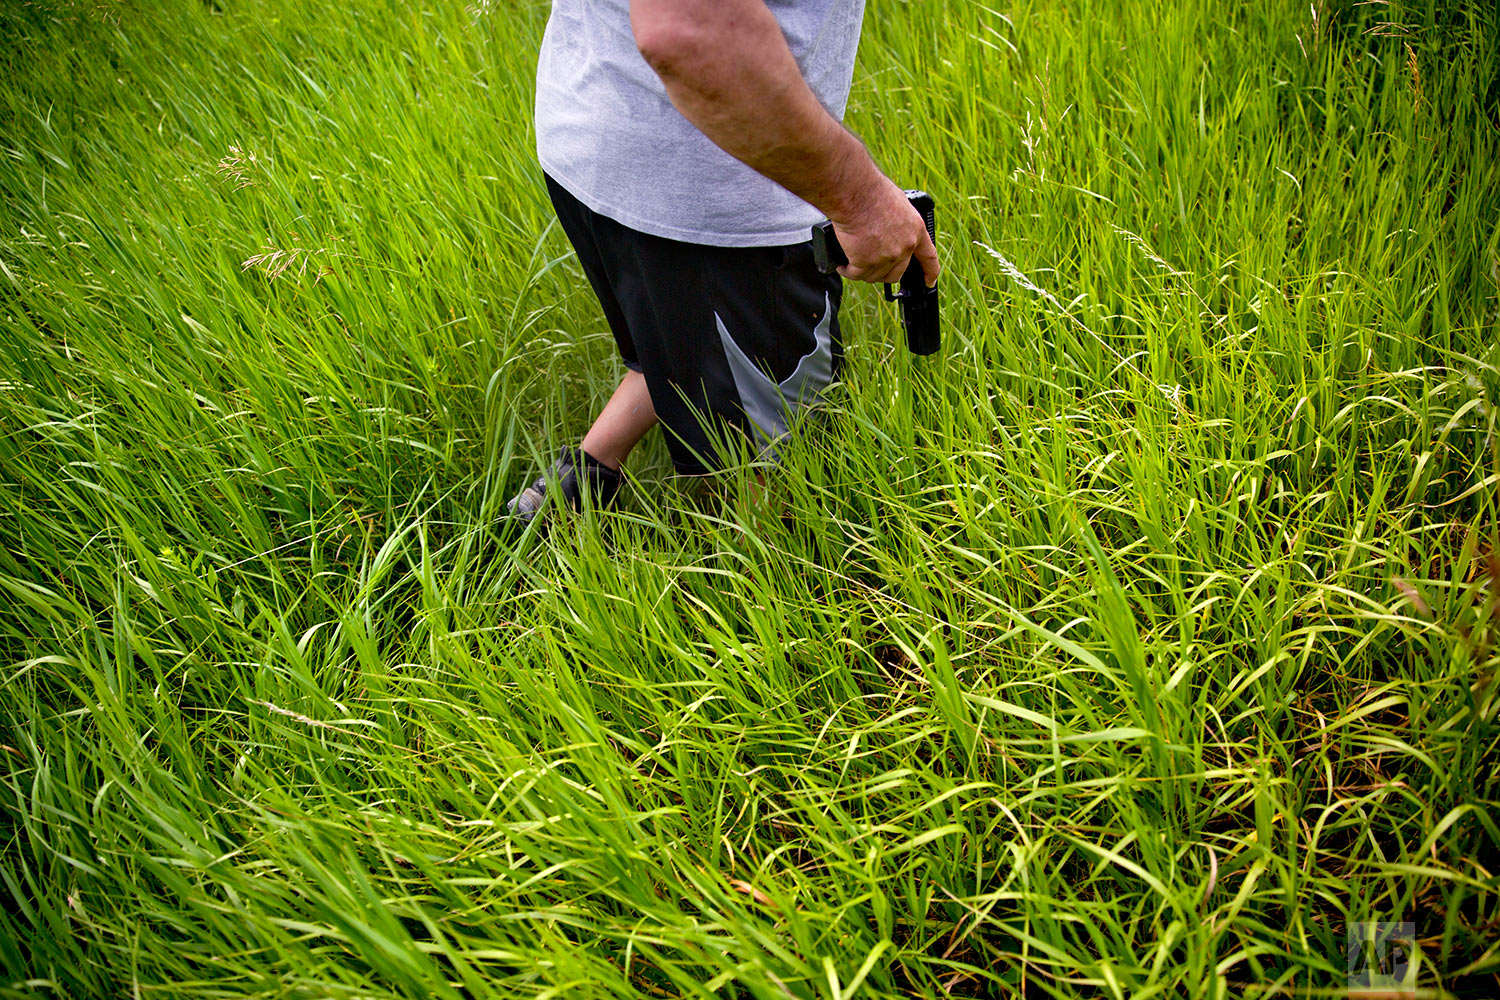 George A. Hall draws his pistol as grizzly bears are heard nearby during a search in Valier, Mont., for Ashley HeavyRunner Loring, July 11, 2018. (AP Photo/David Goldman)